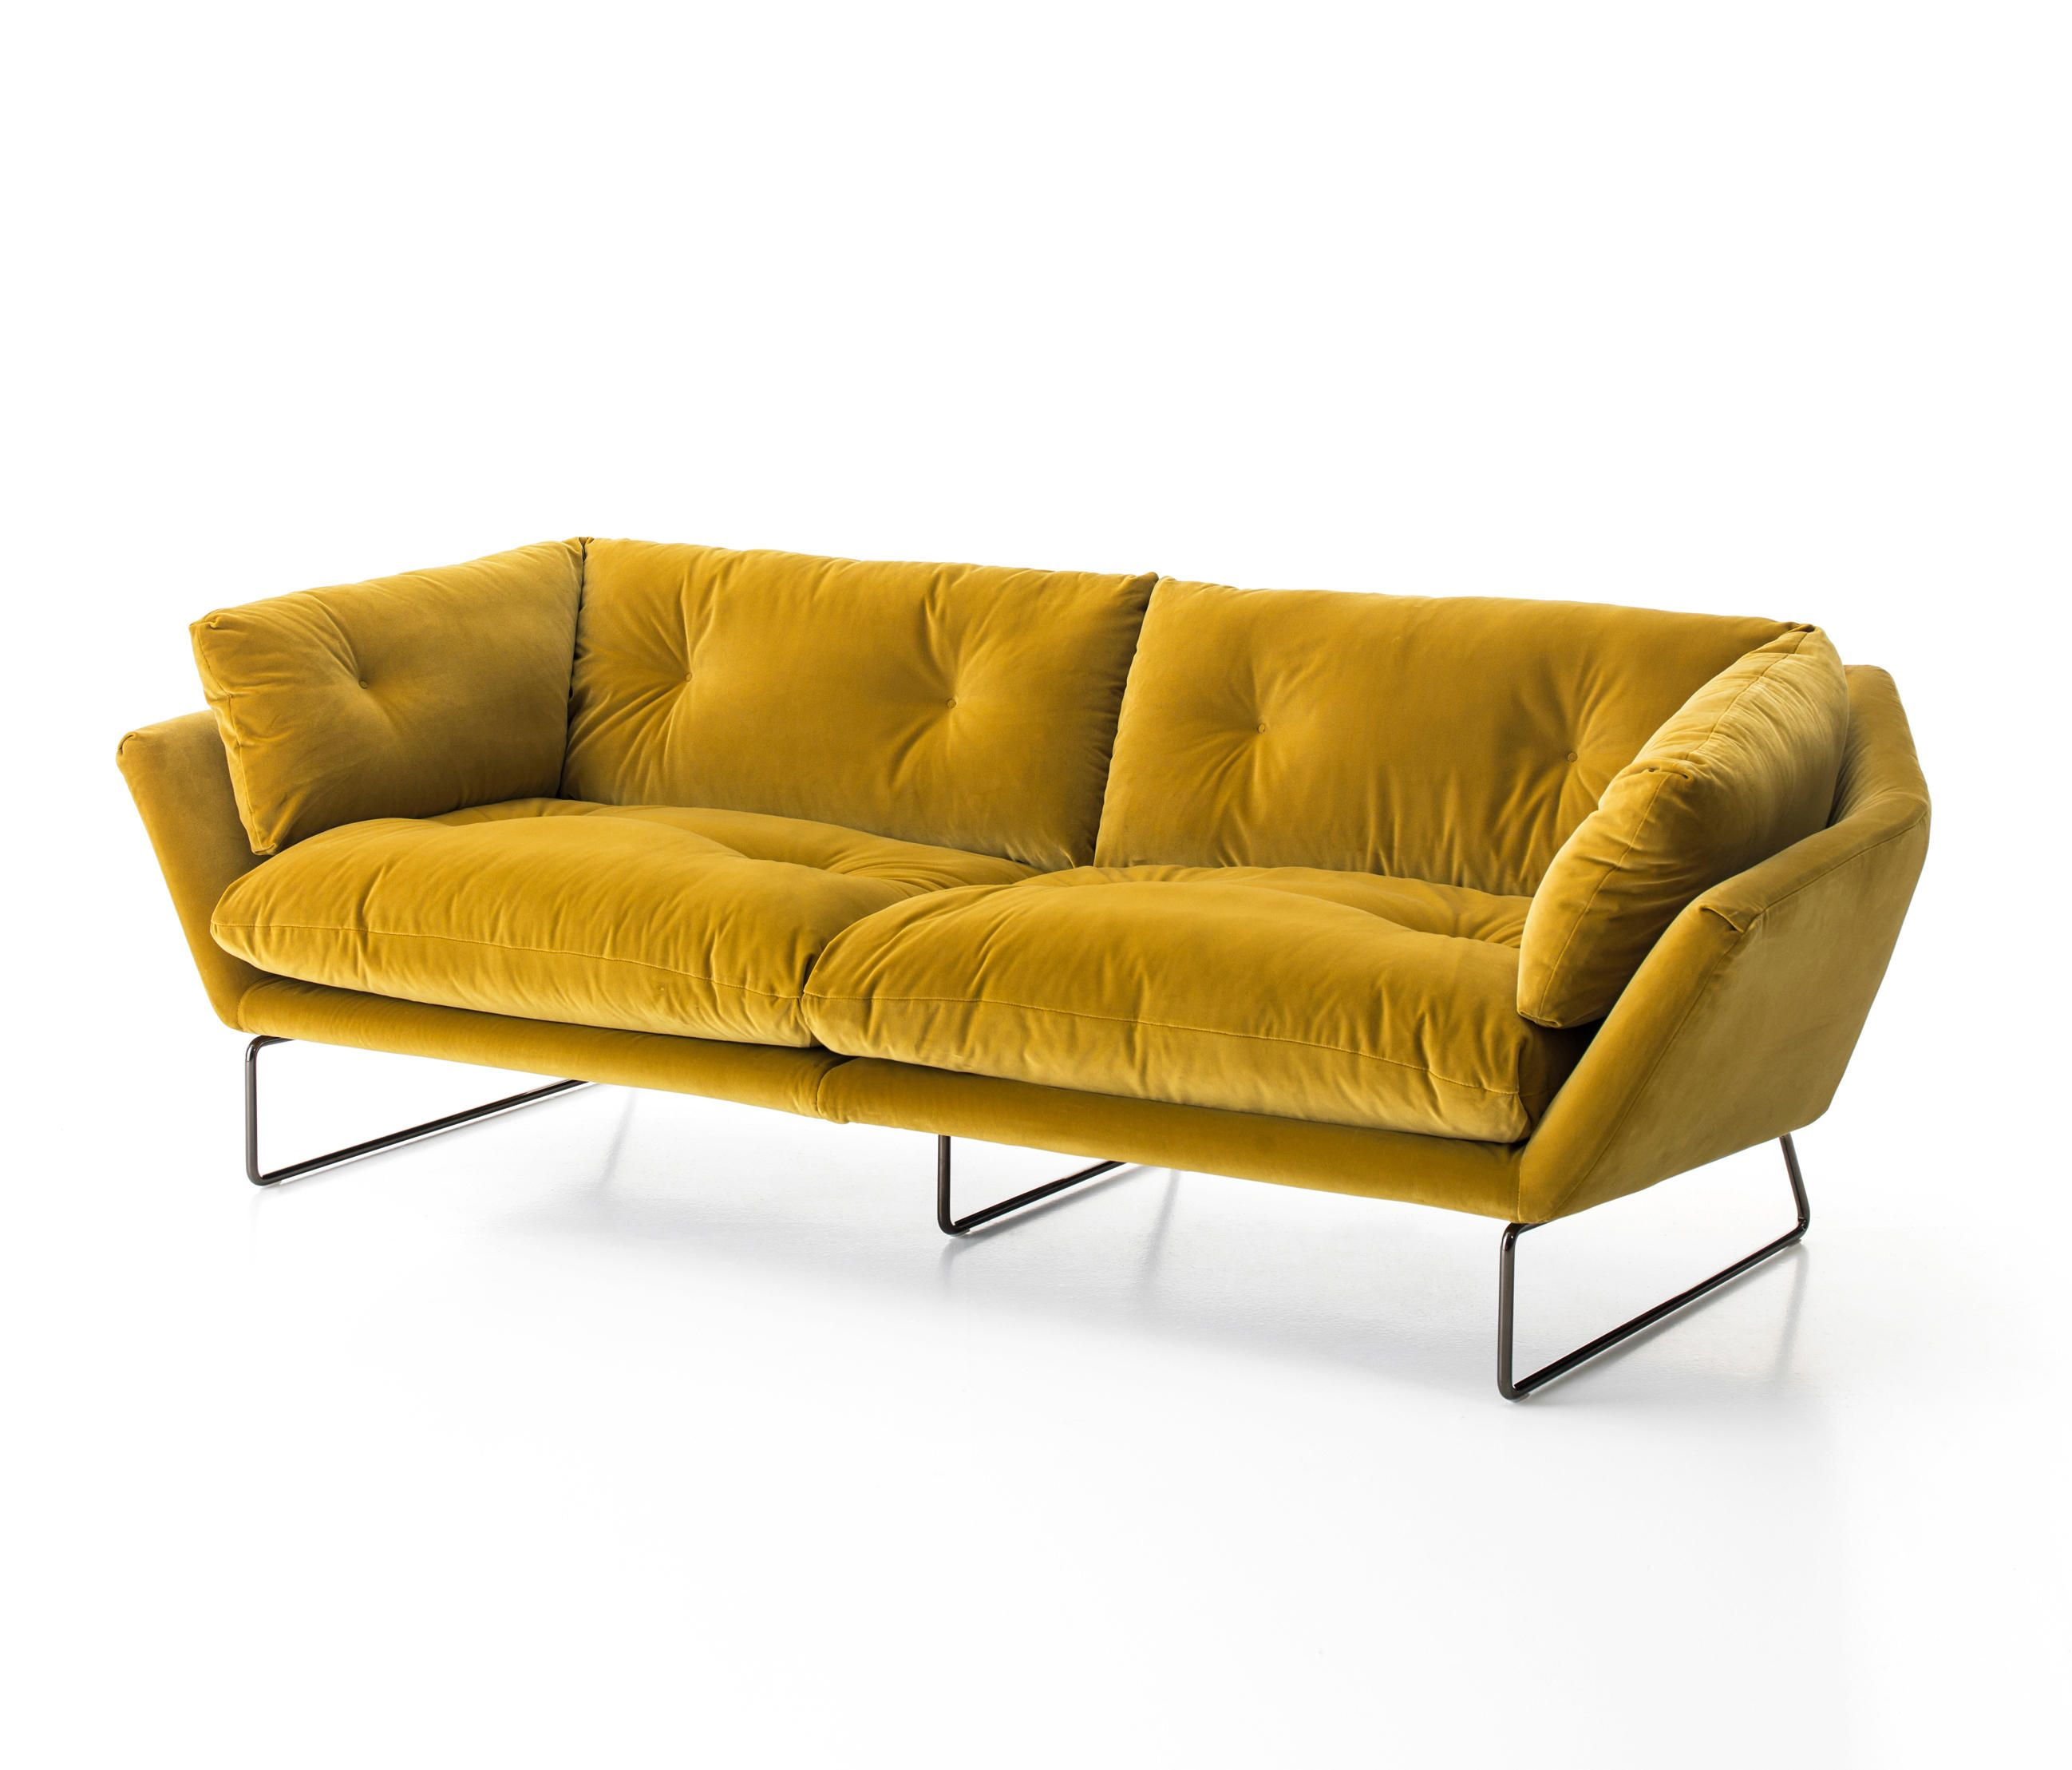 New York Suite Sofa Designer Lounge Sofas From Saba Italia All Information